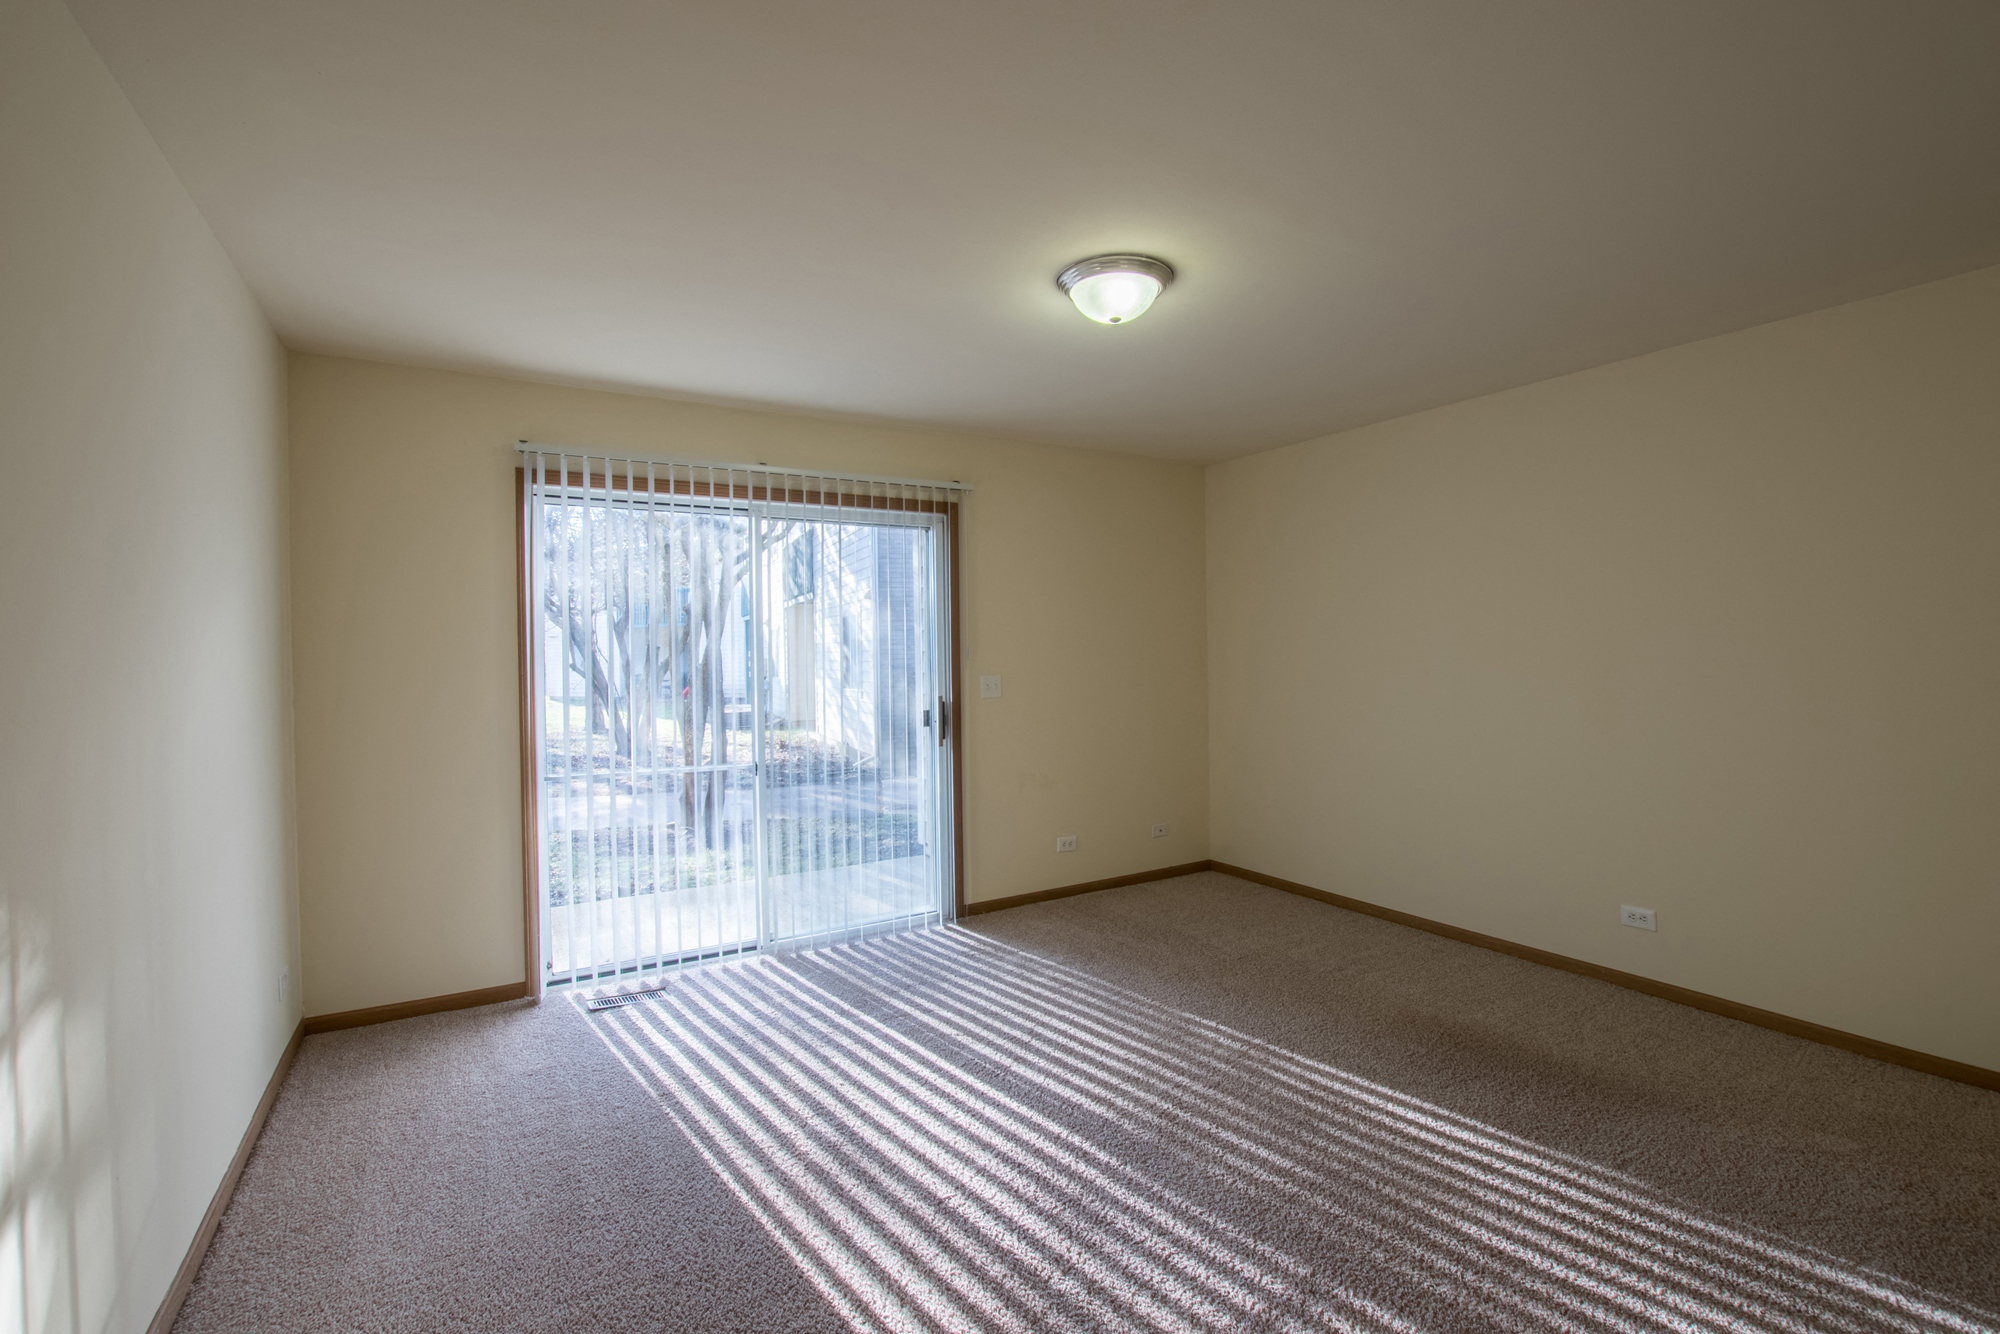 Living Room at Fox Pointe Apartments in Aurora, IL